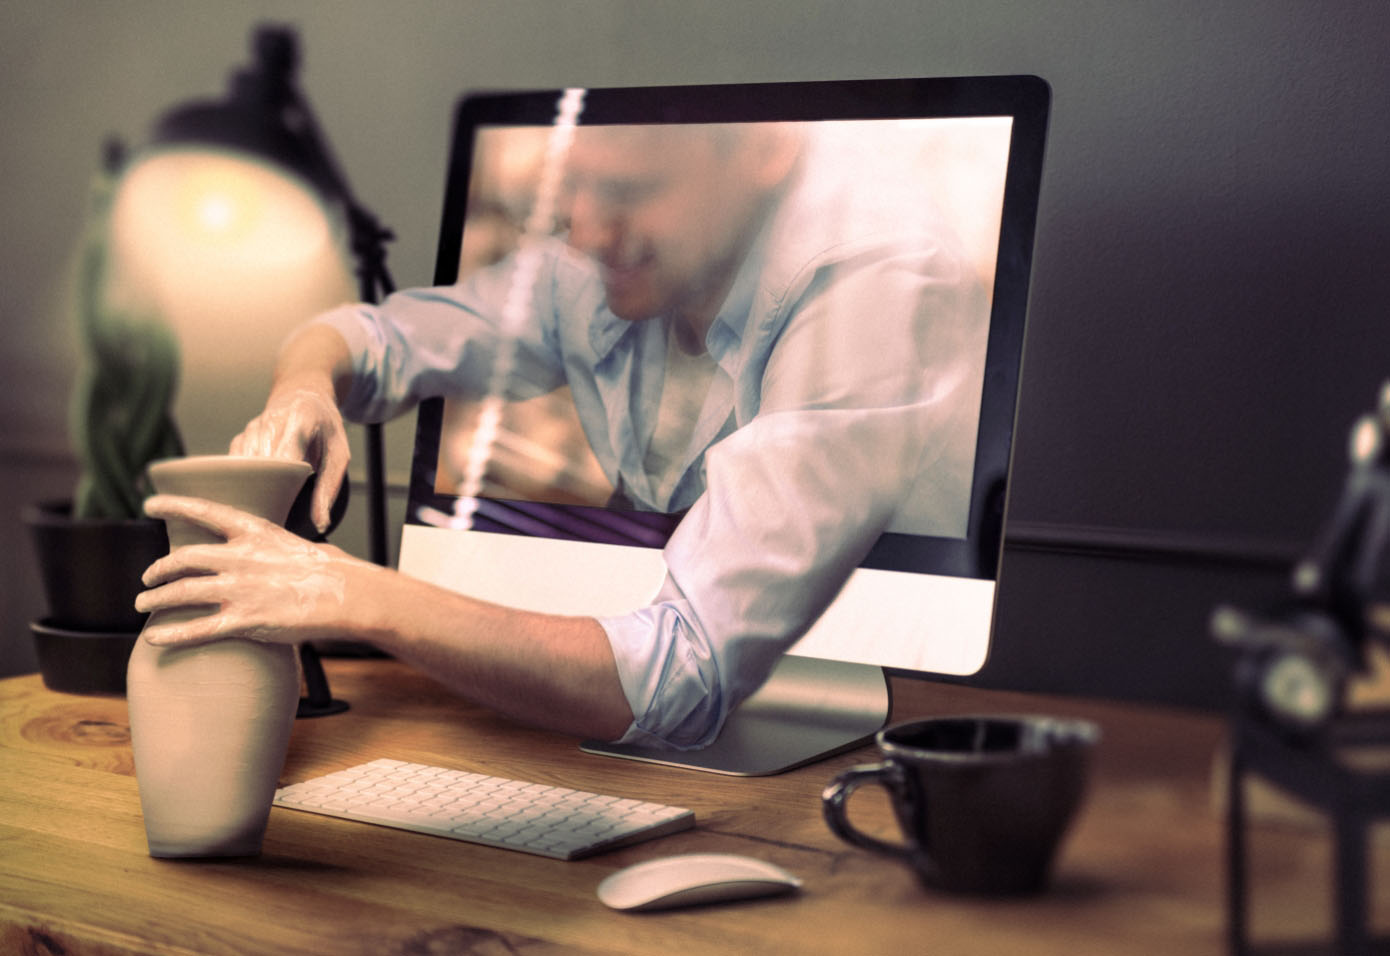 A digital man extends his arms out of a computer monitor's screen, which is sitting on a desk with a keyboard, mouse and mug, and is handcrafting a clay jar.